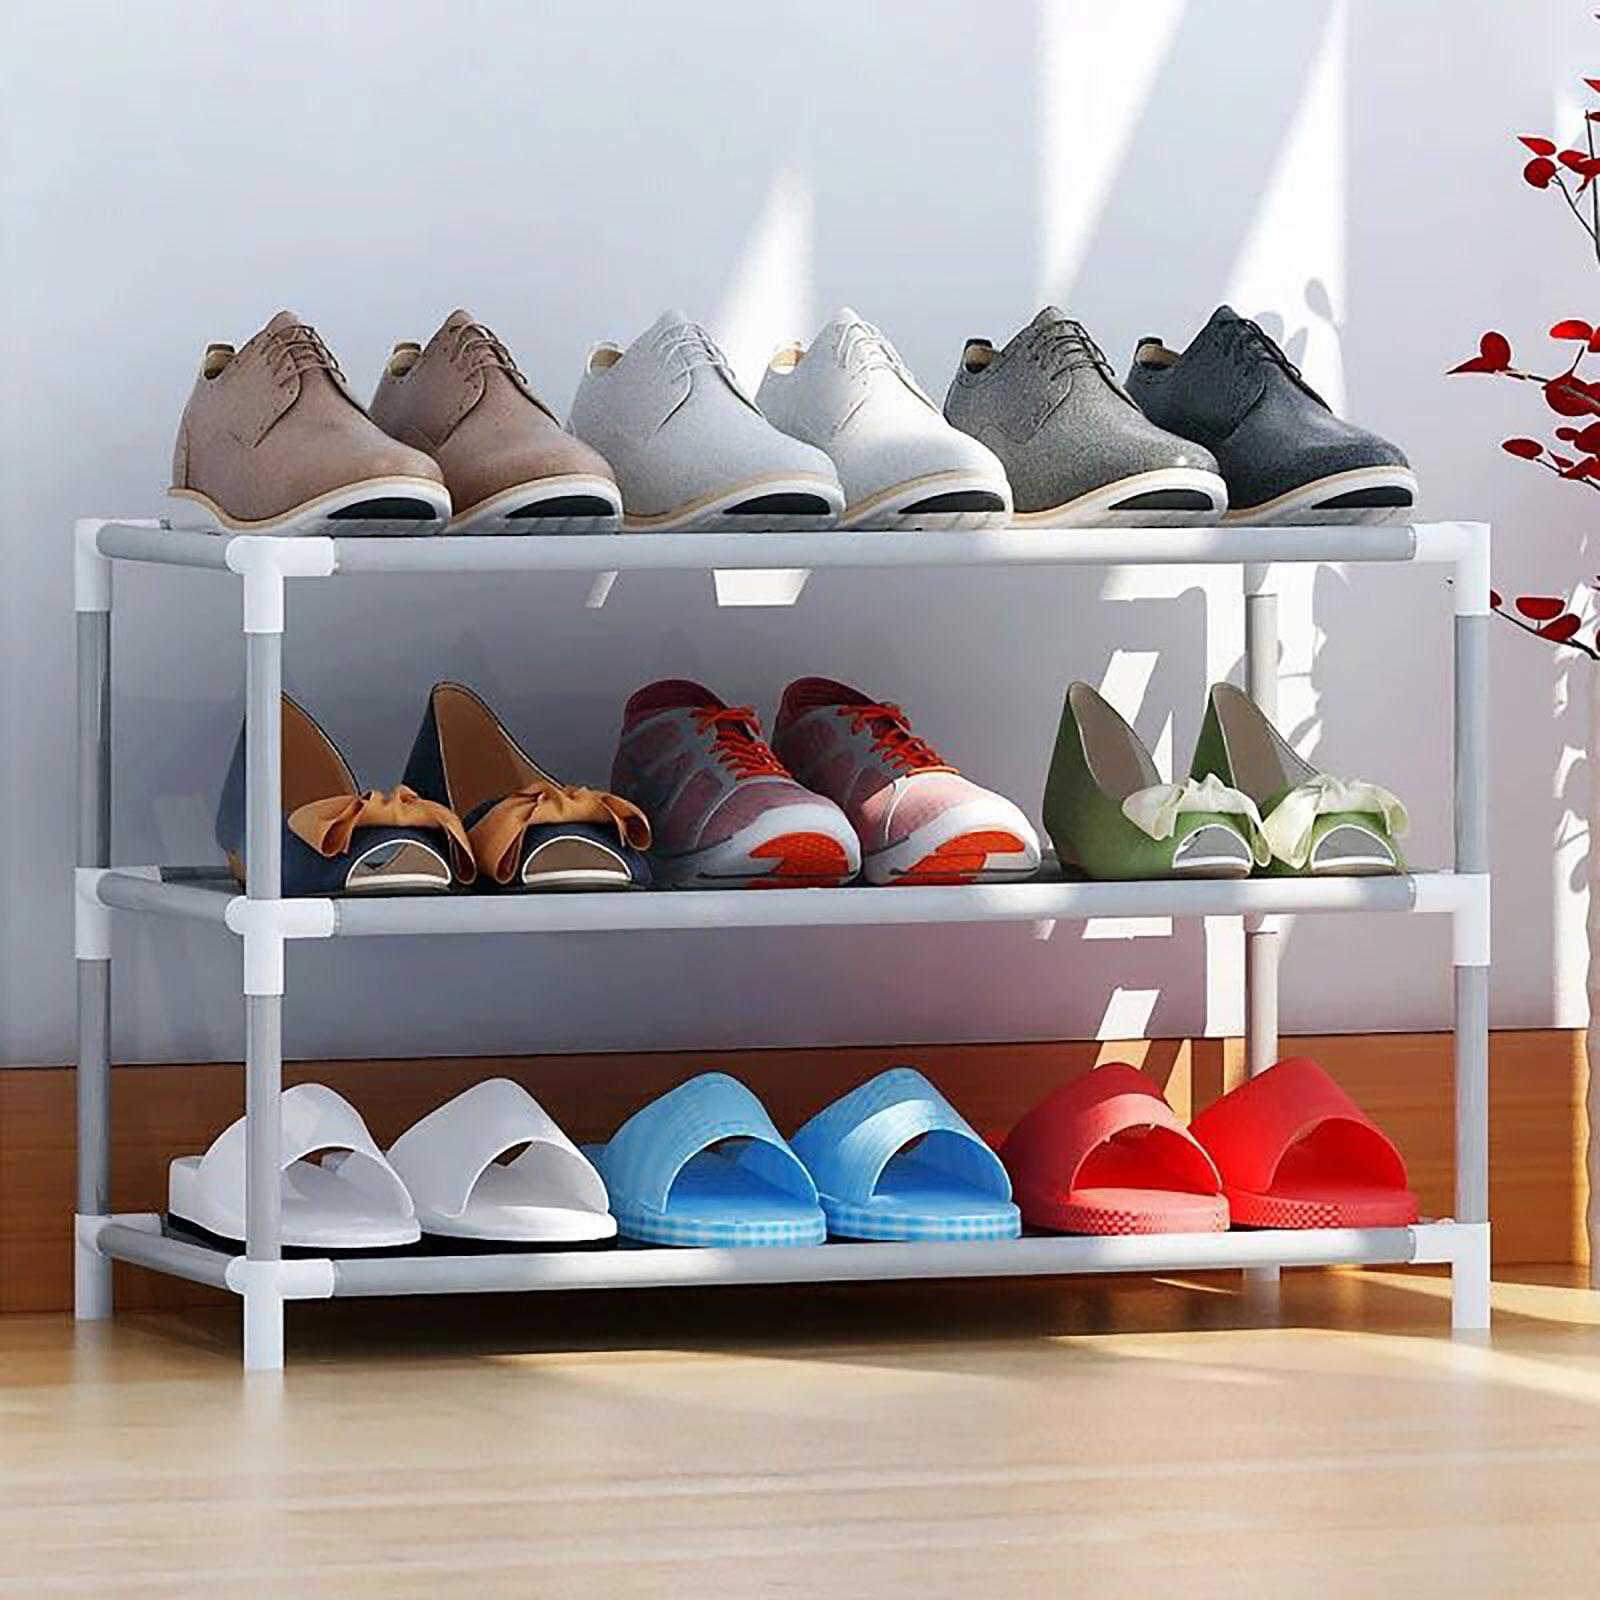 Shoe Ark Simple Multilayer Shoe Rack Assembly Dustproof Xg-3 By Movall.